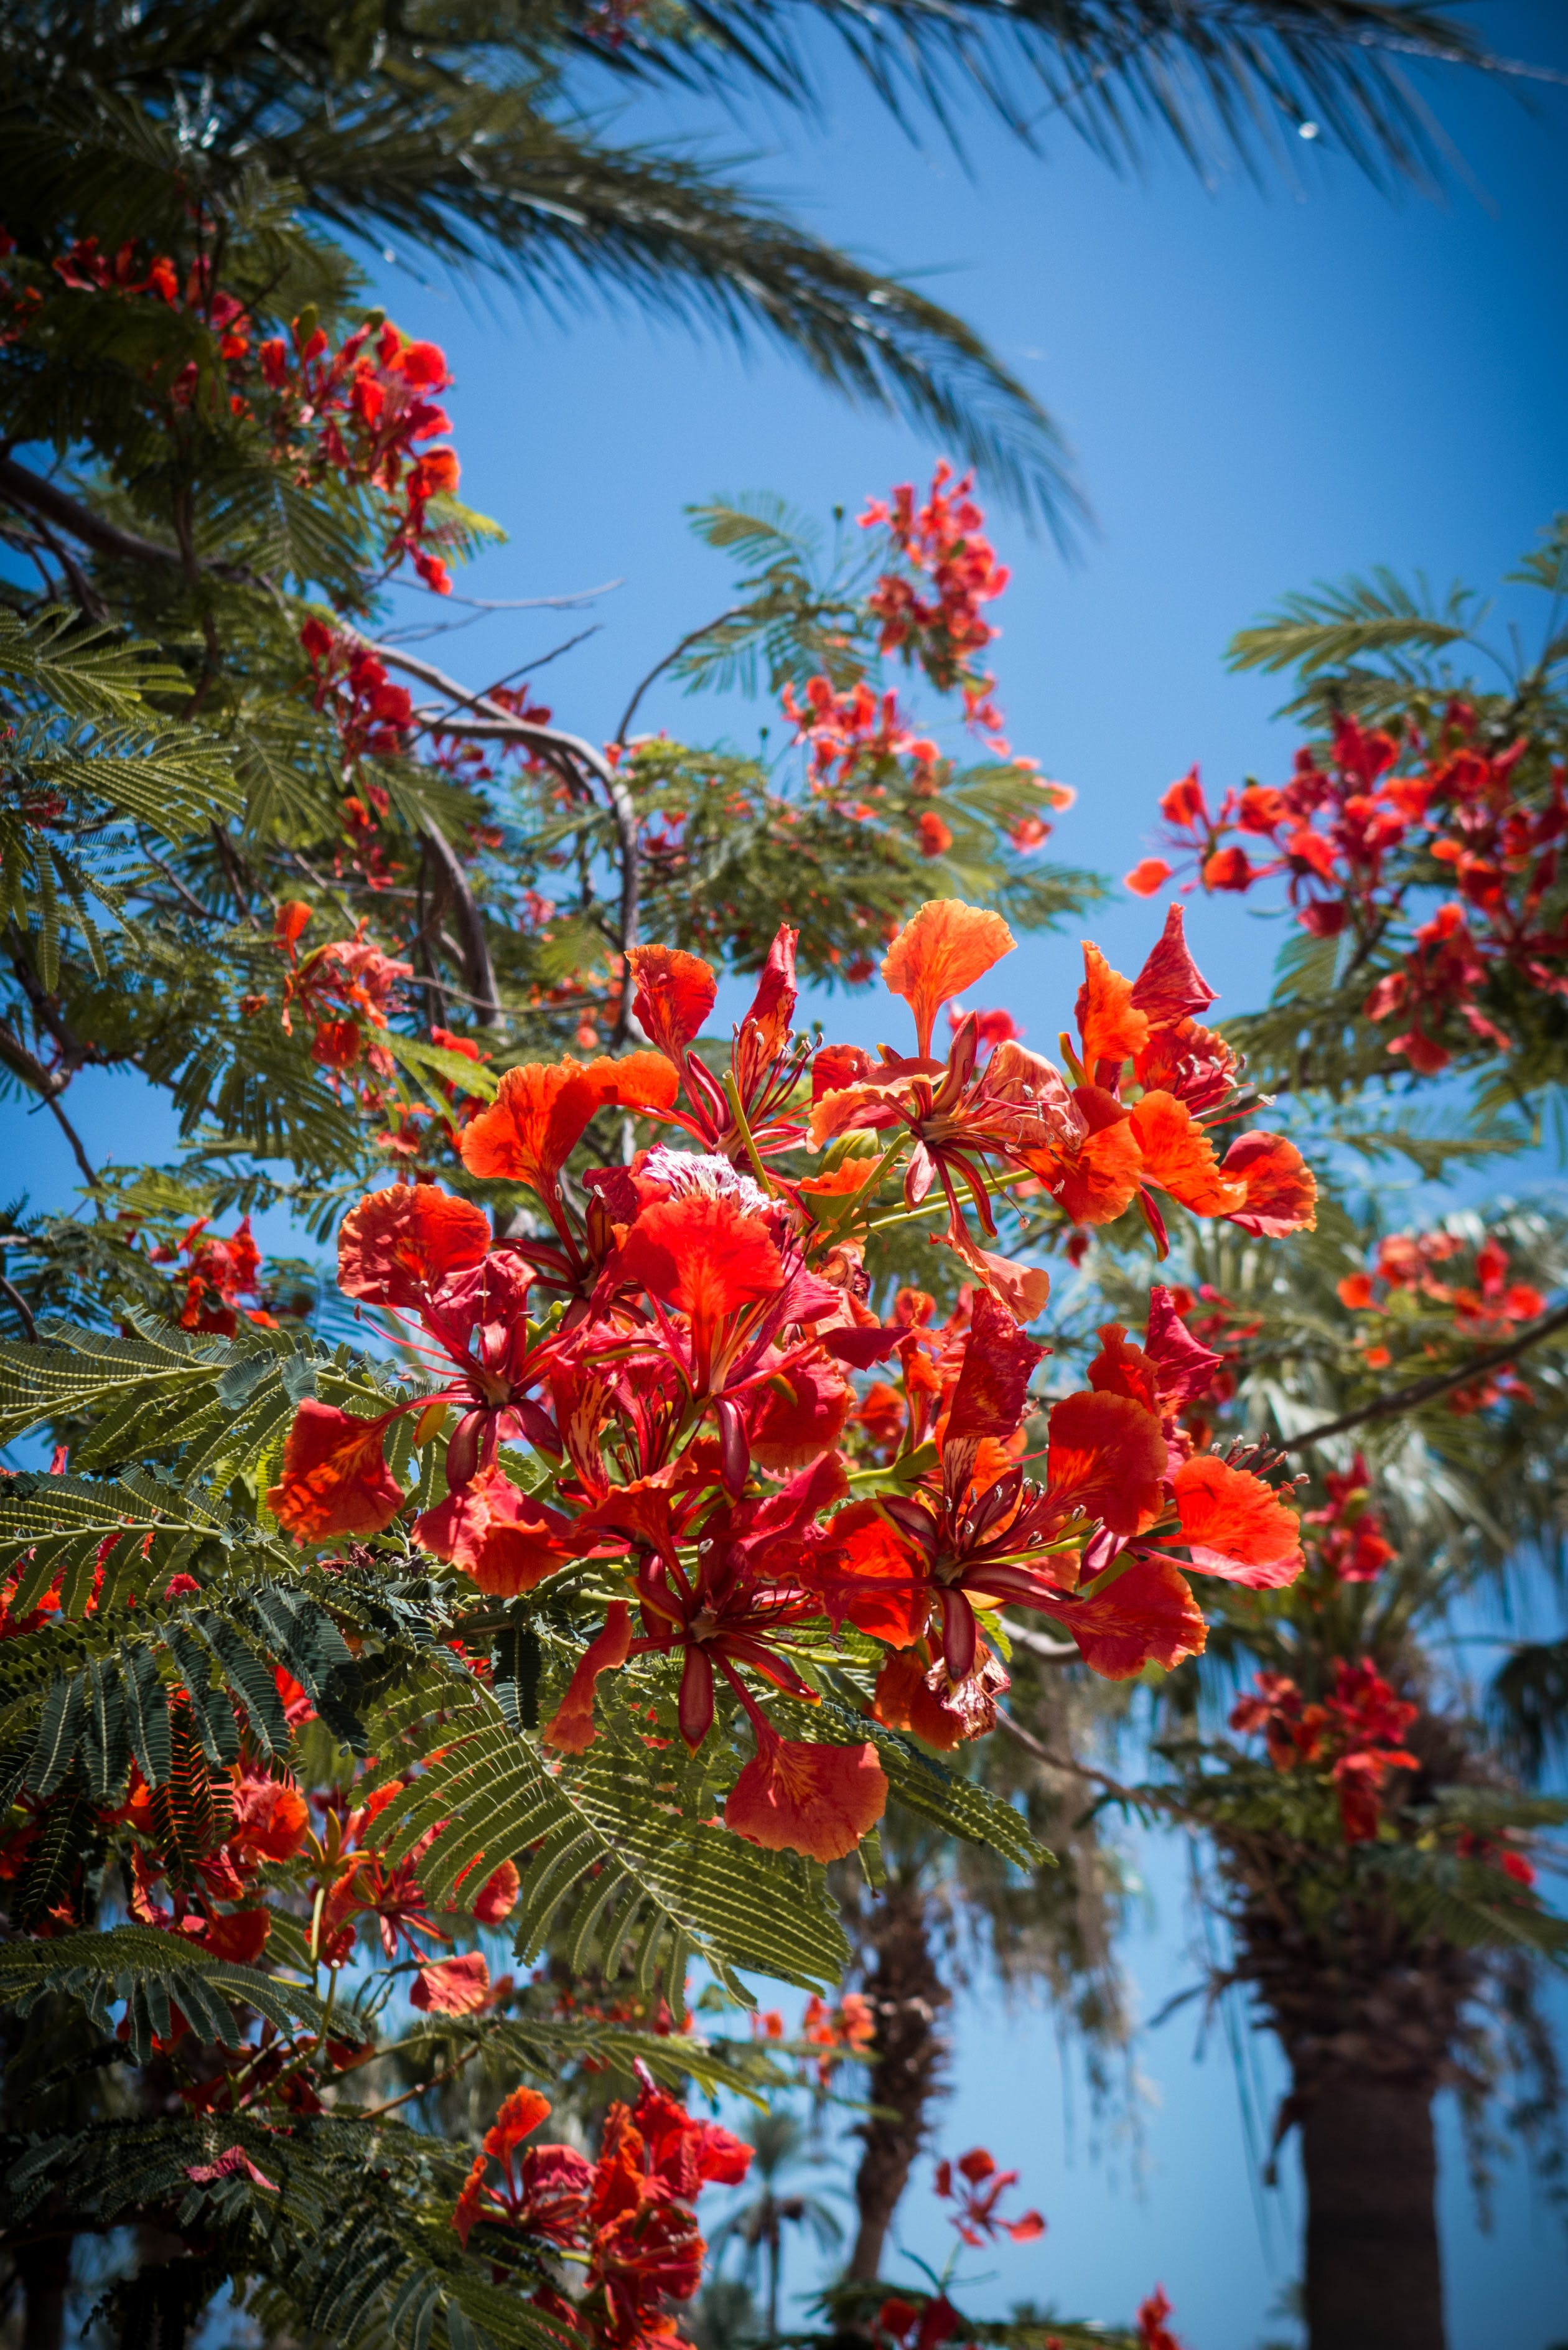 Shallow Focus Photography of Red Flowers With Leaves